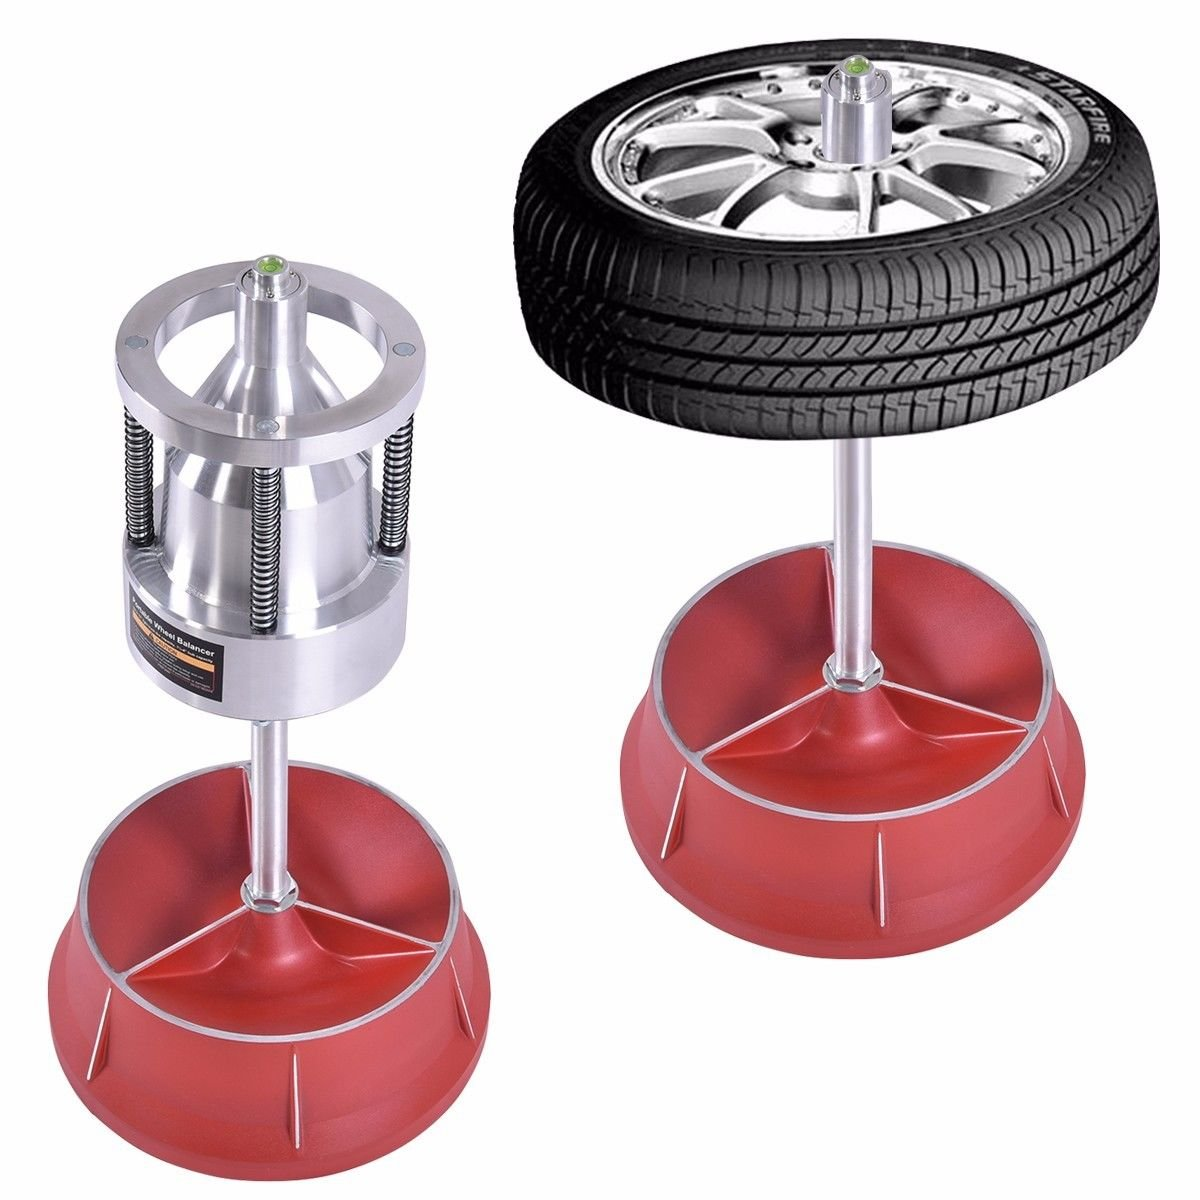 Pro Portable Hubs Wheel Balancer W/ Bubble Level Heavy Duty Rim Tire Cars Truck - Easily balance wheels with hubs from 1-1/2'' to 4'' diameter by Nice1159 (Image #1)